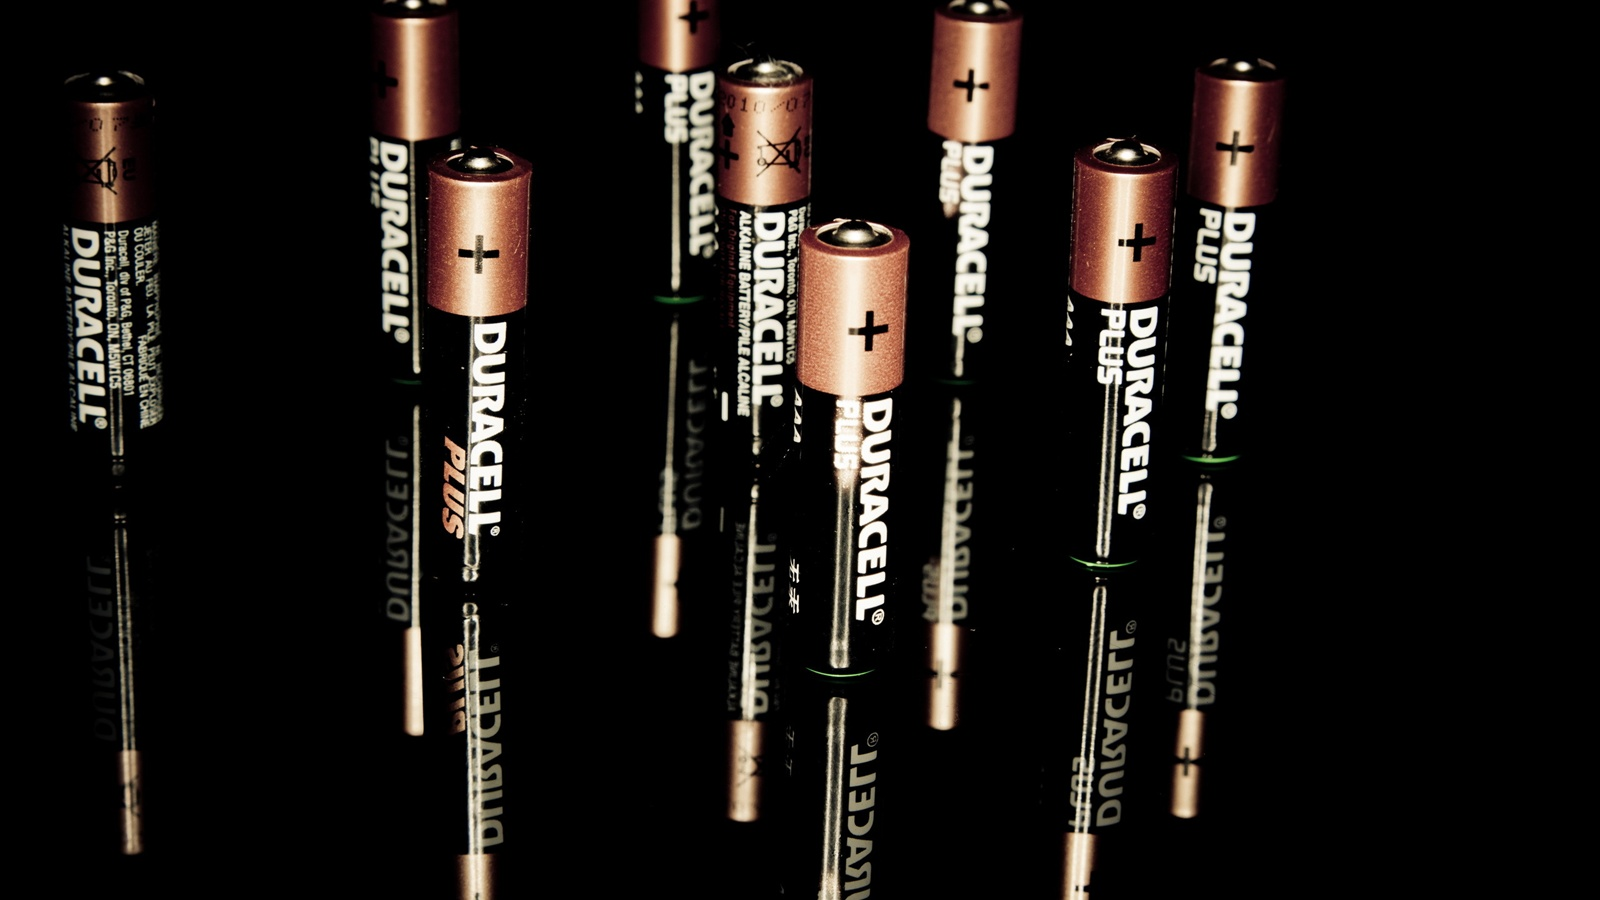 Wallpaper Duracell battery 2560x1600 HD Picture Image 1600x900